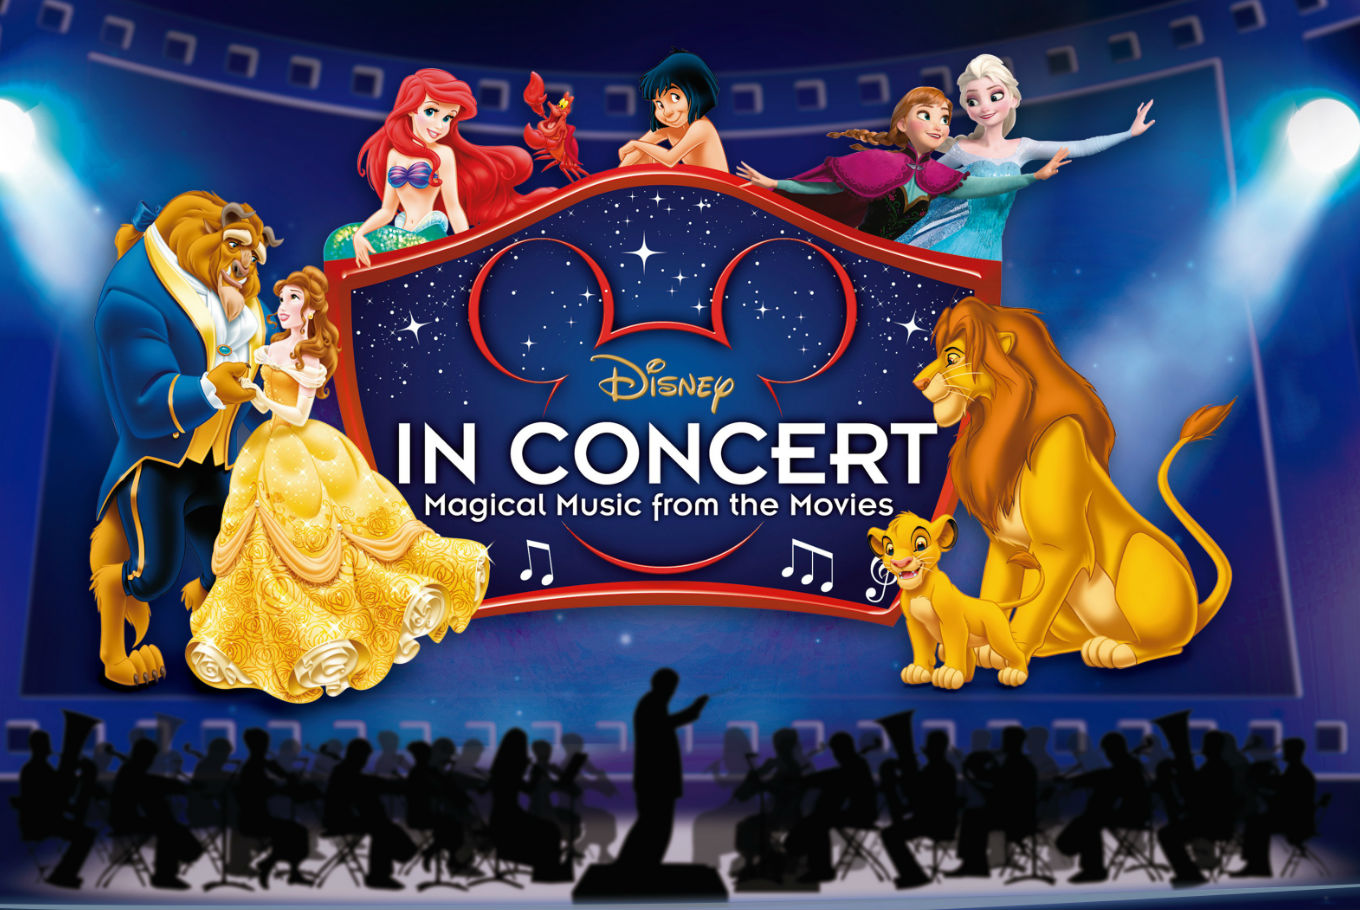 Concierto de Disney 'Magical Music from the Movies' en Auditorio del Forum (Barcelona)